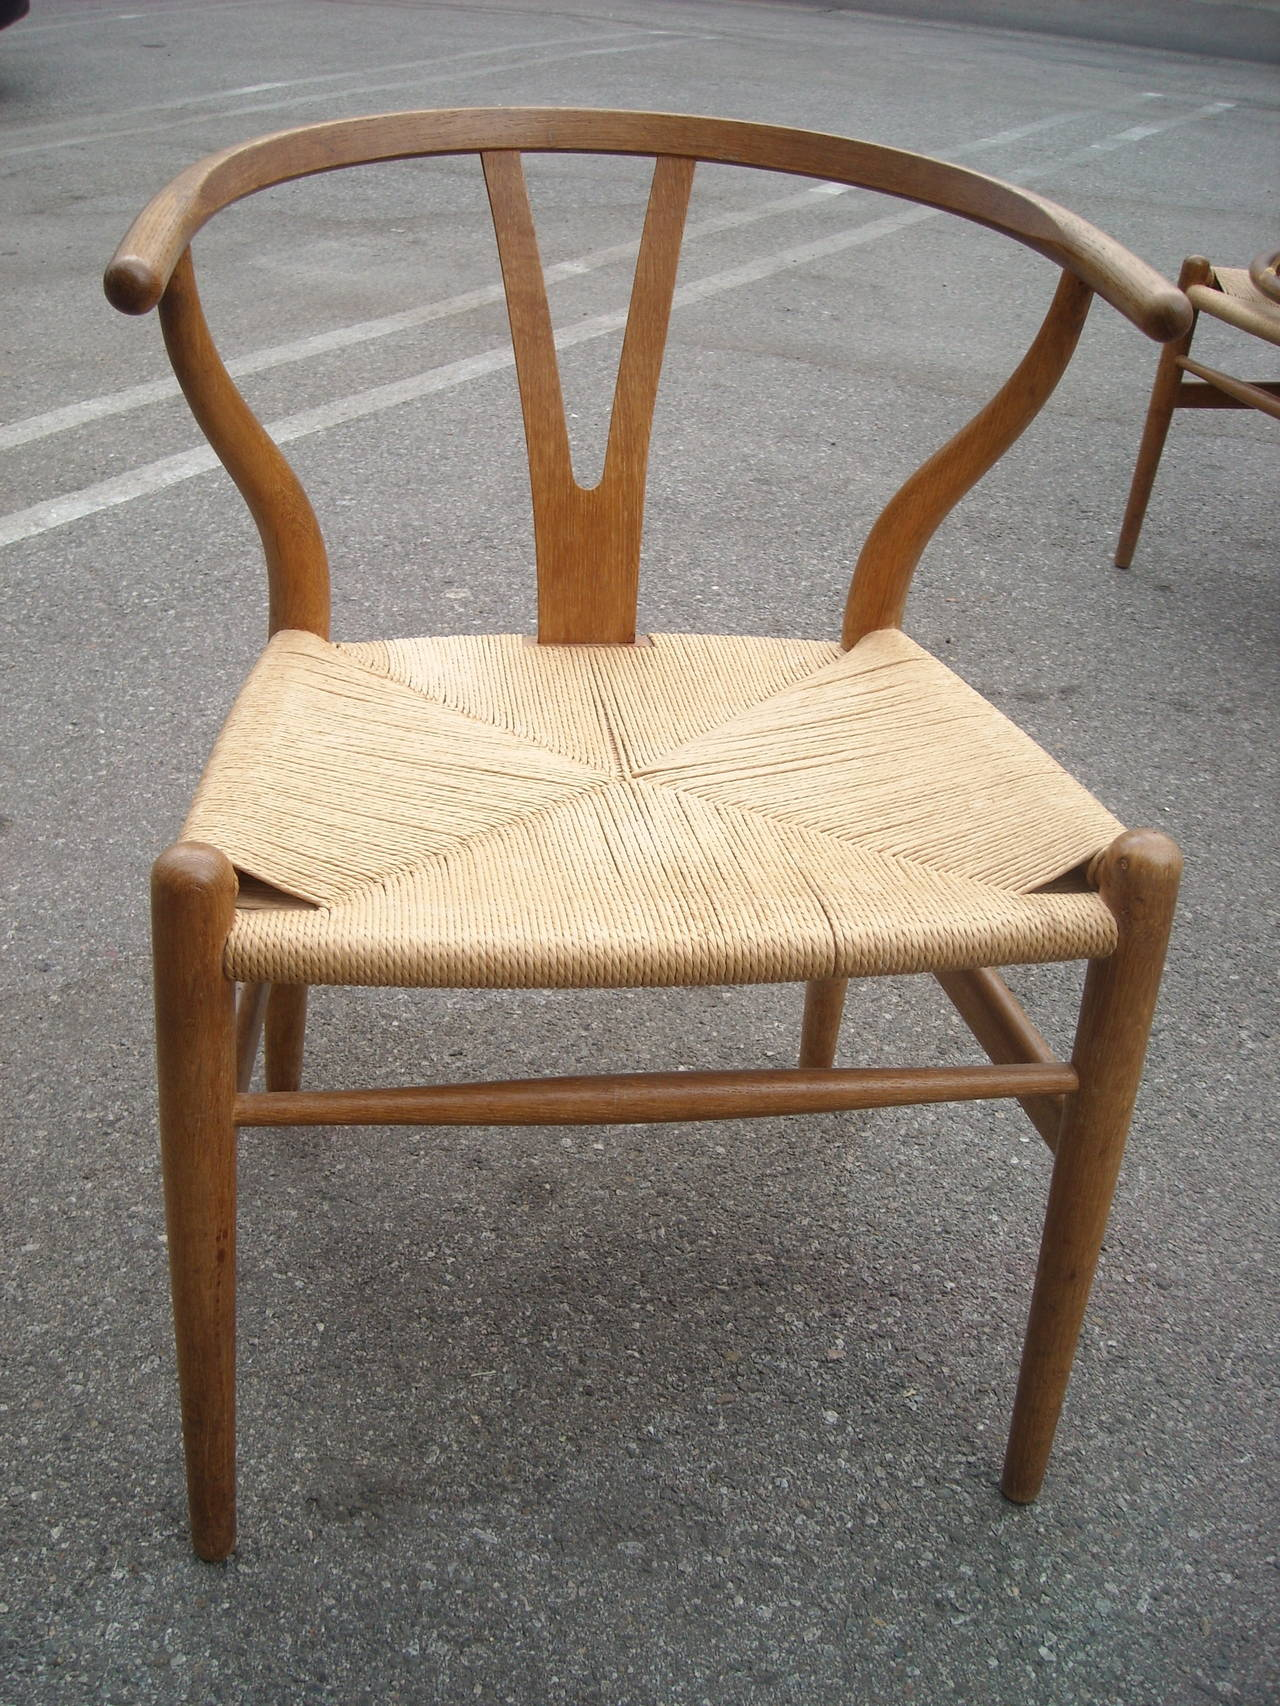 Traditional and well known the y chair or wishbone in oak designed by hans wegner